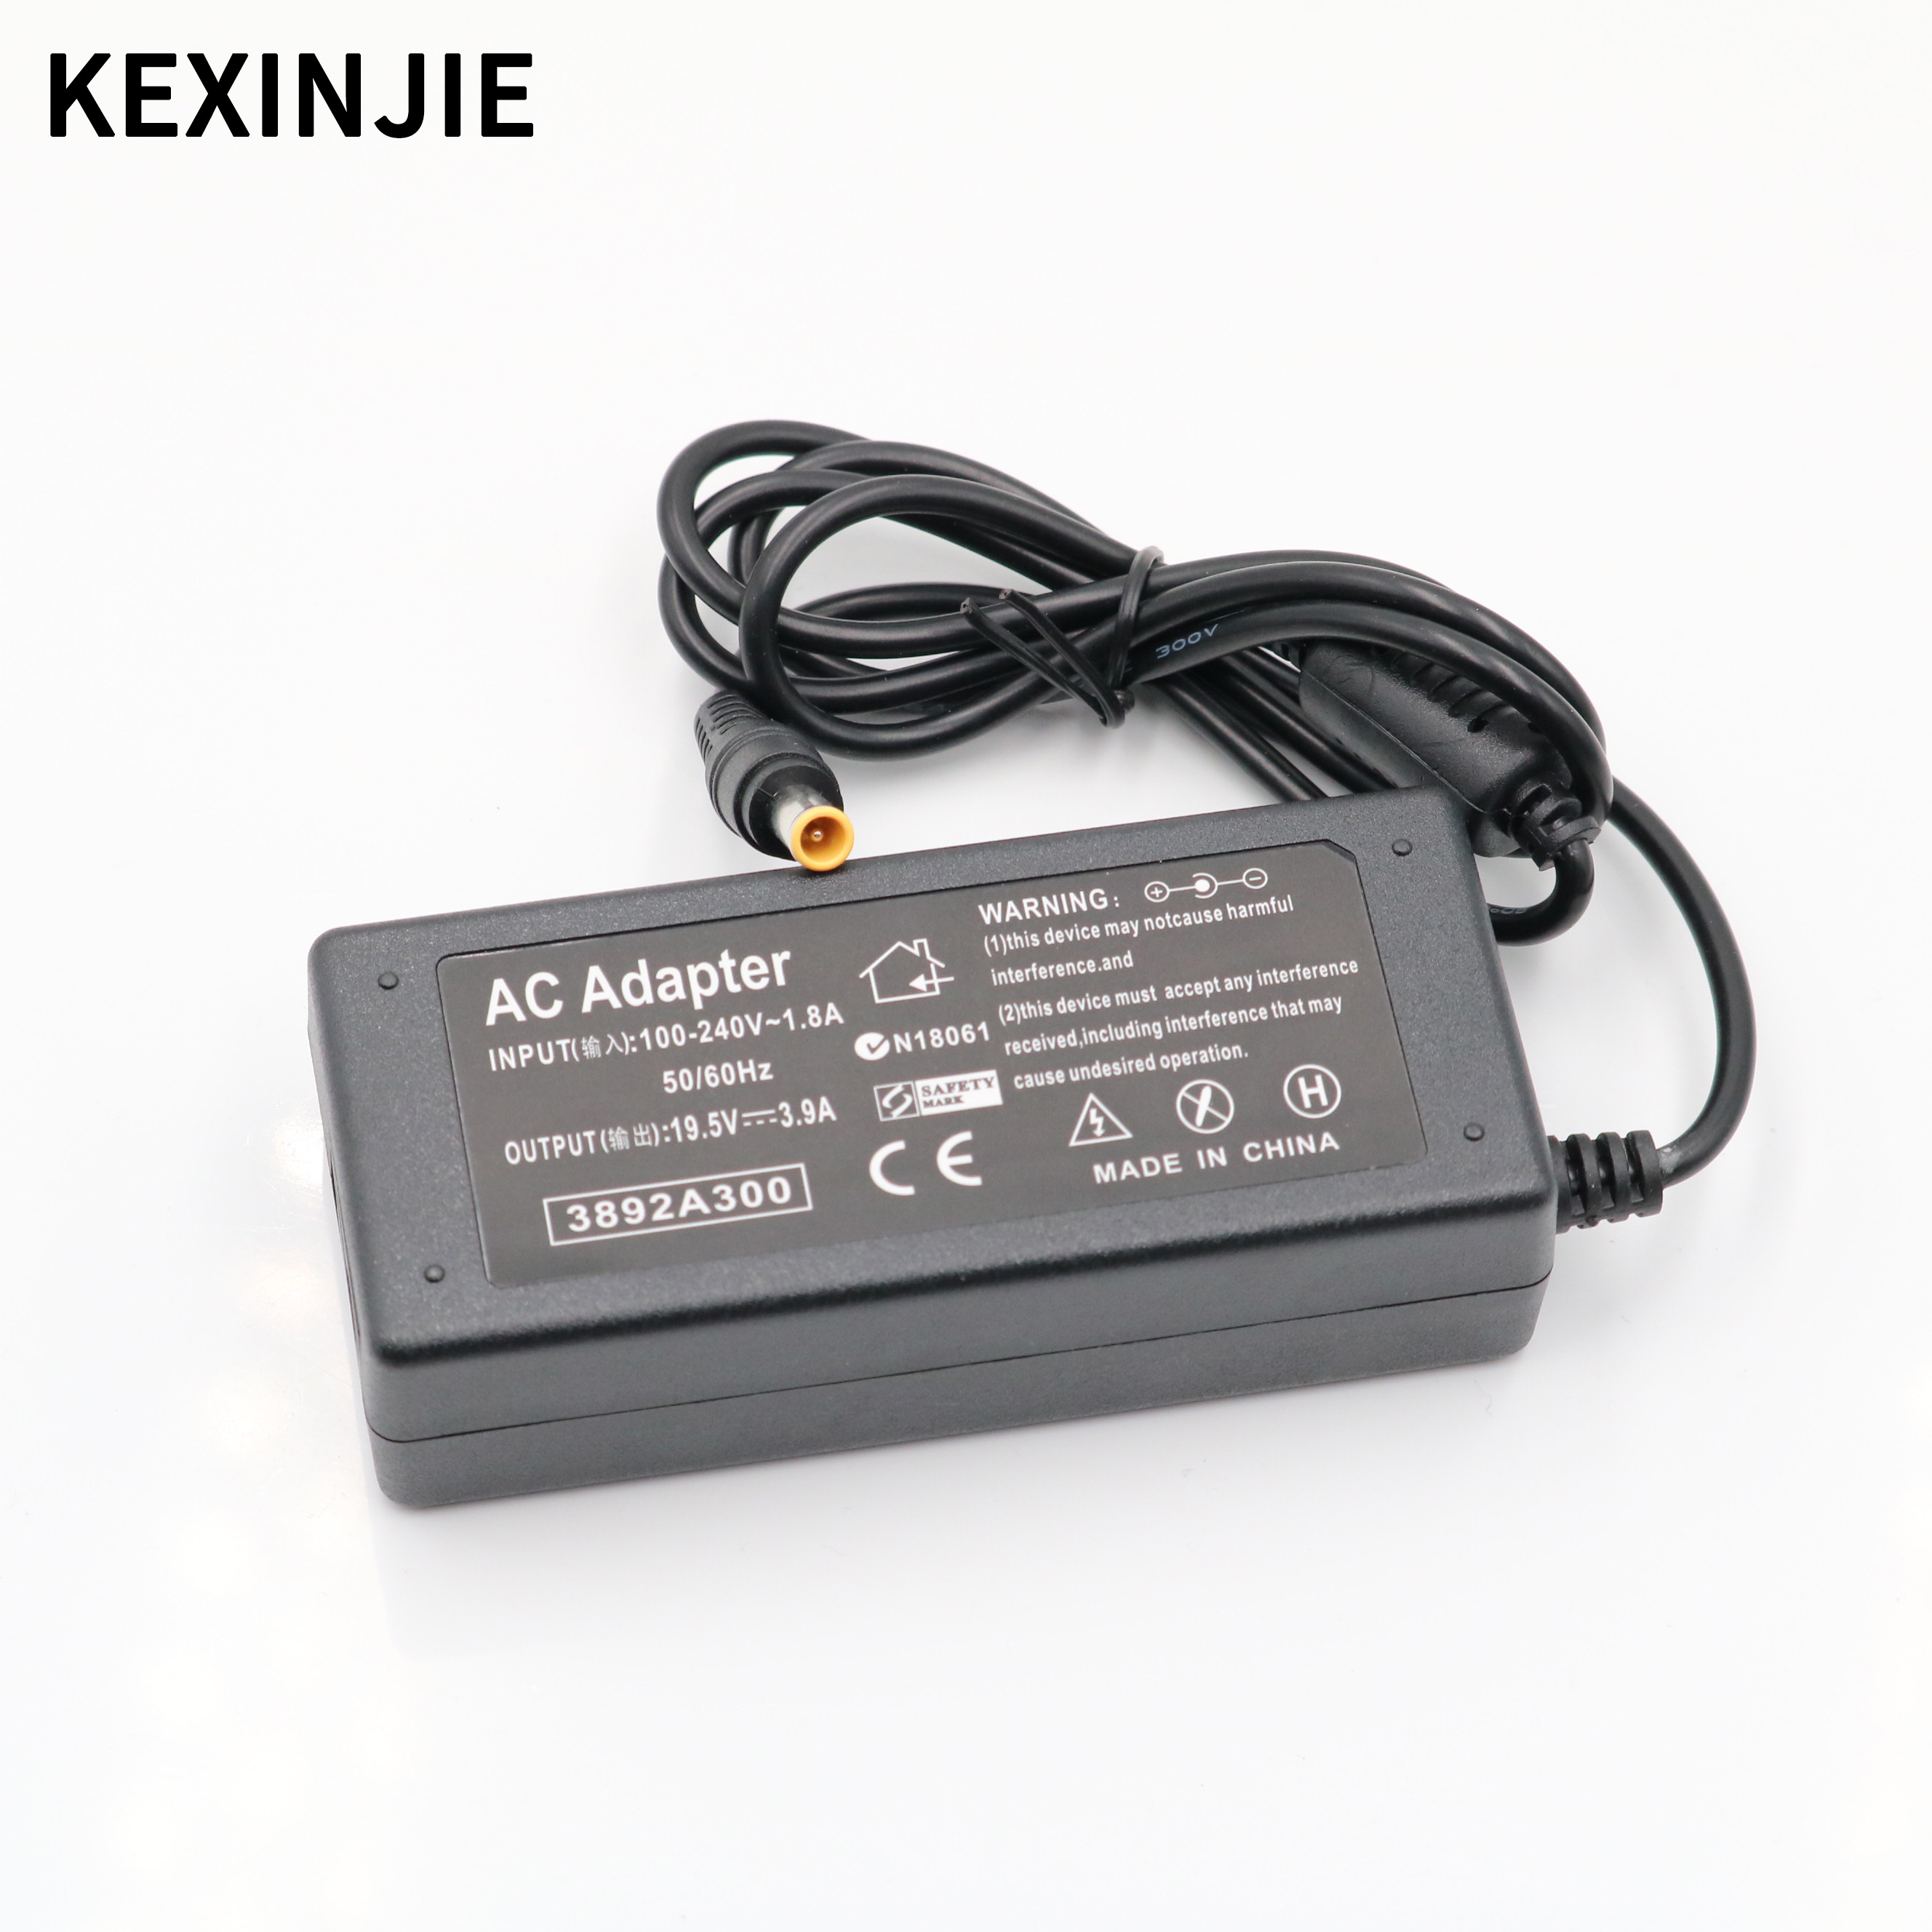 19.5V 3.9A Laptop Ac Power Adapter Charger For Sony VAIO SVE171E13M VGP-AC19V19 VGP-AC19V20 VGP-AC19V27 VGP-AC19V37 VGP-AC19V33